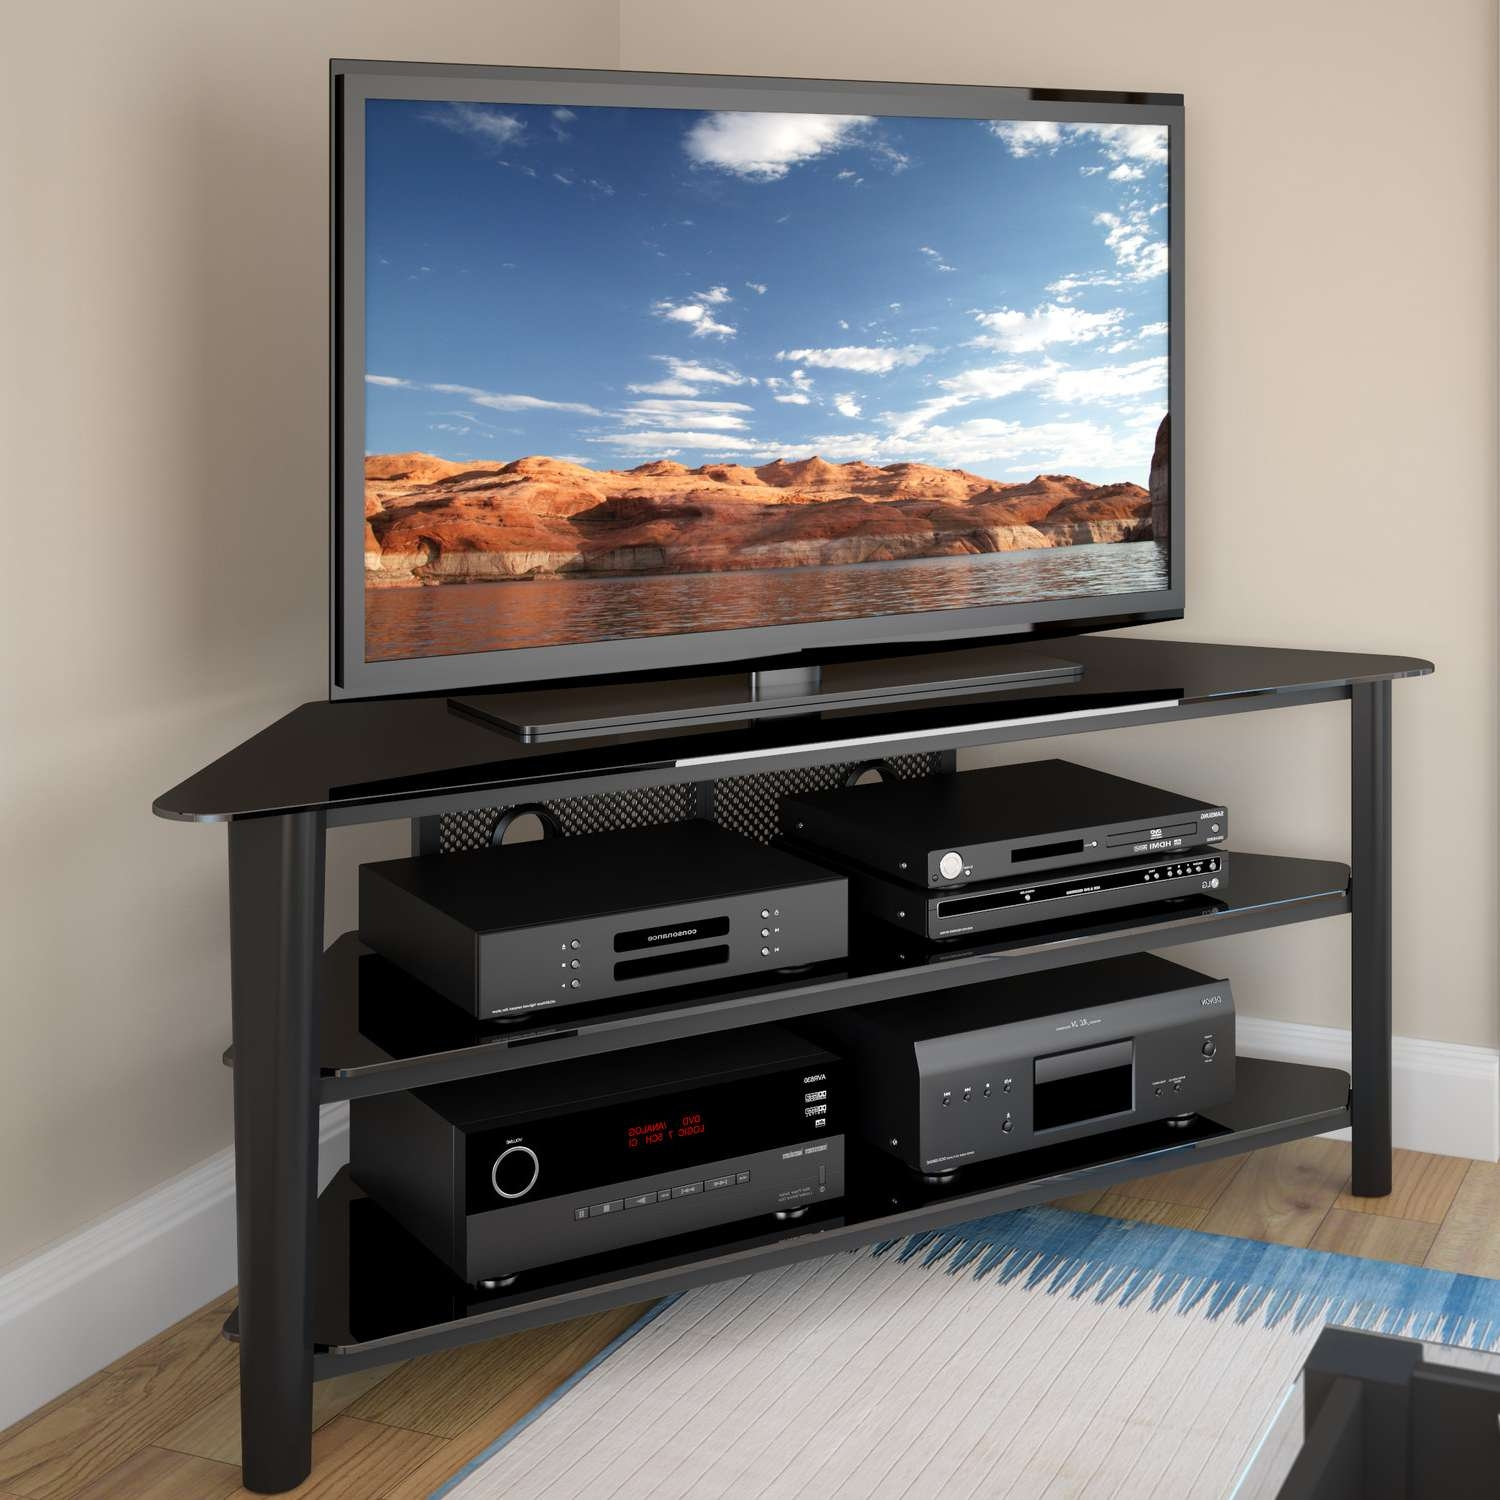 Tv Stand : 40 Fearsome 65 Inch Tv Corner Stand Pictures Concept Throughout Corner Tv Stands 40 Inch (View 14 of 20)